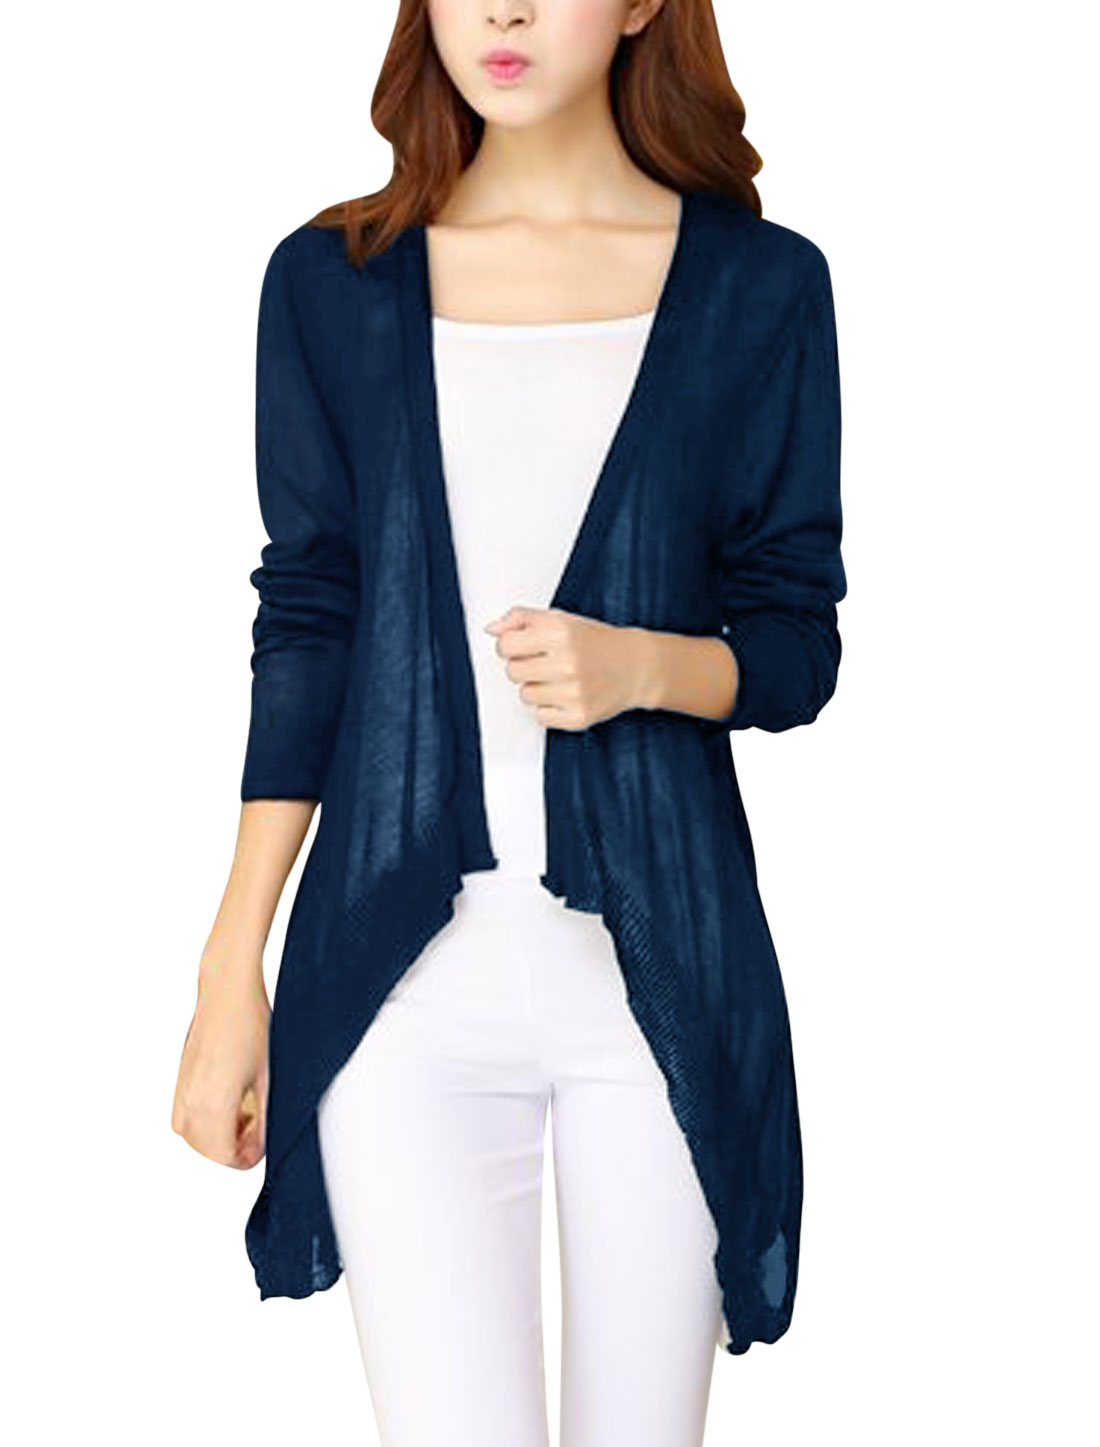 Woman Fashion Draped Front Long Sleeve Navy Blue Knit Cardigan XS